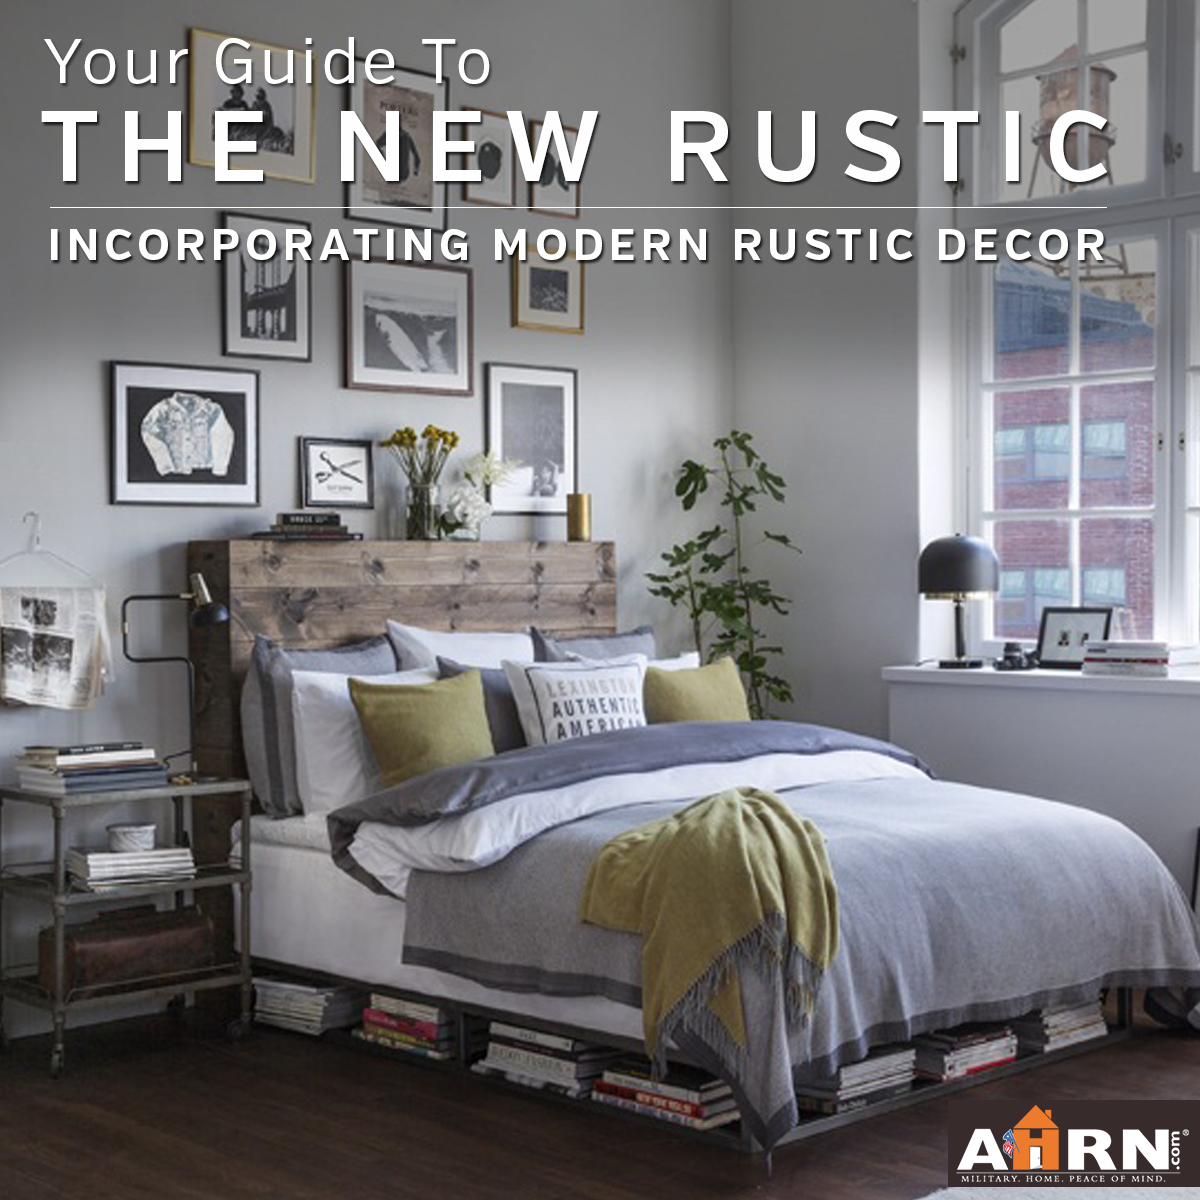 Modern Classic And Rustic Bedrooms: Your Guide To The New Rustic Decor